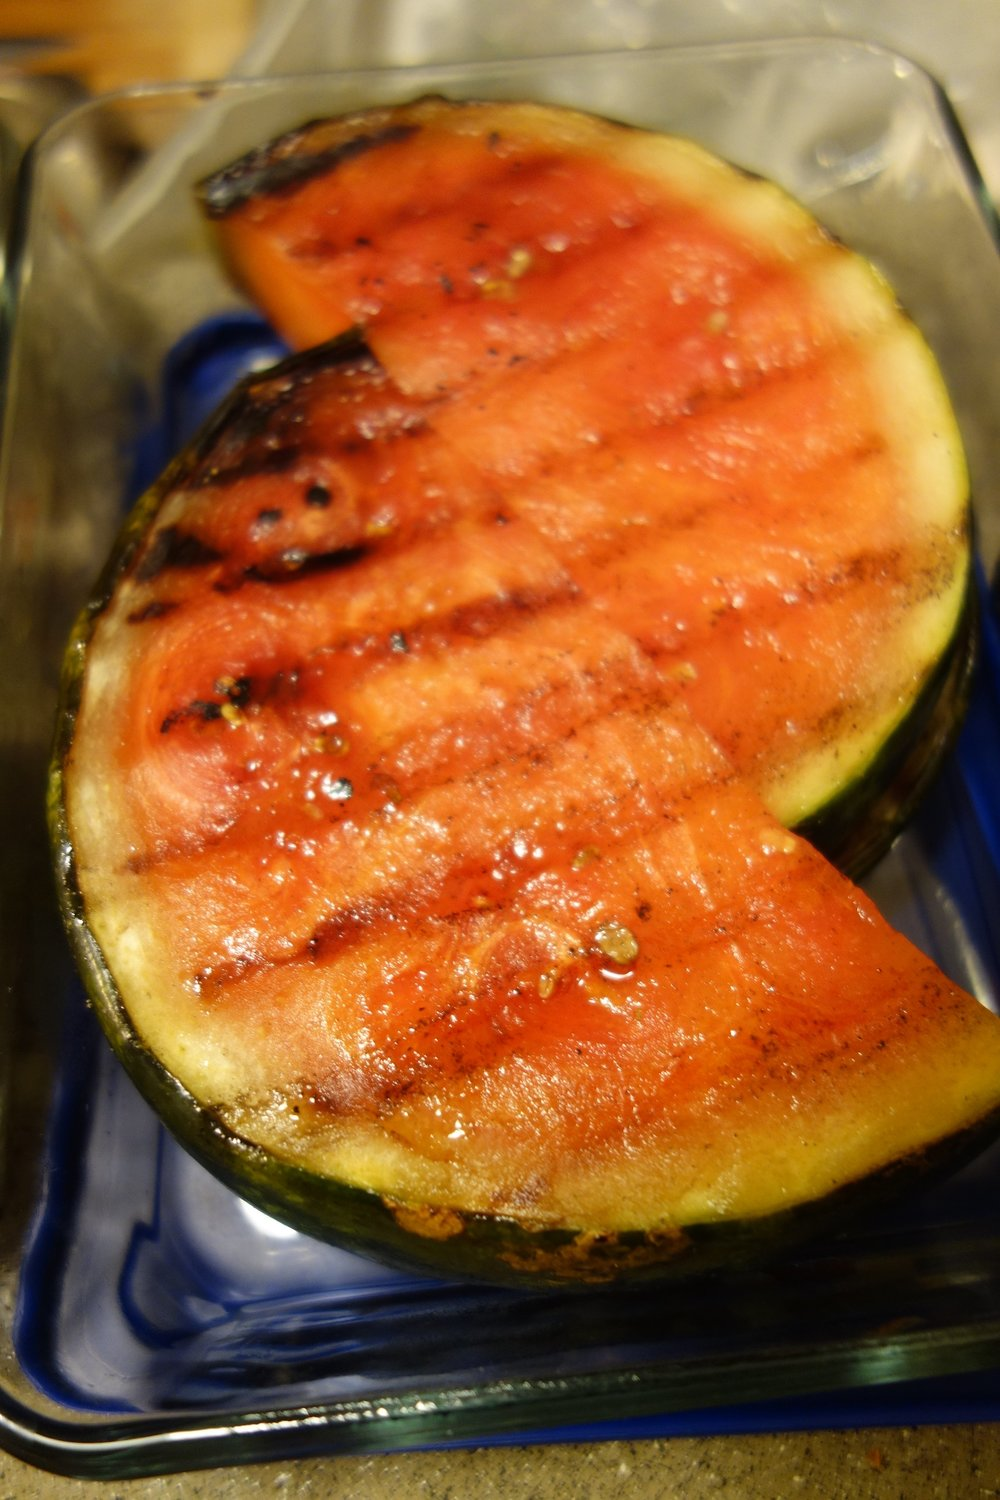 Grilled Watermelon for Dessert